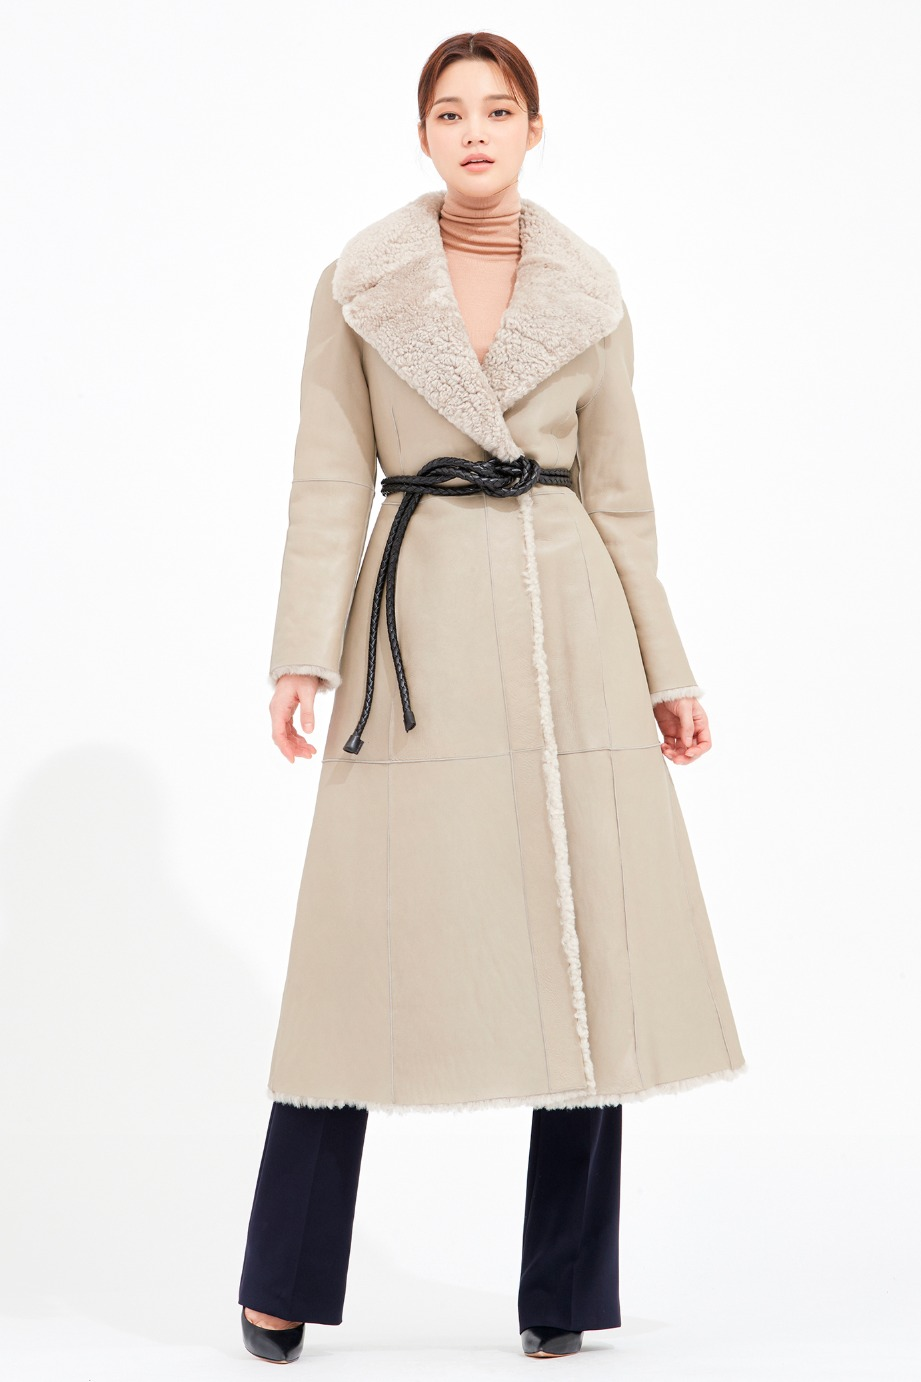 WIDE COLLAR REVERSIRBLE SHEARING COAT